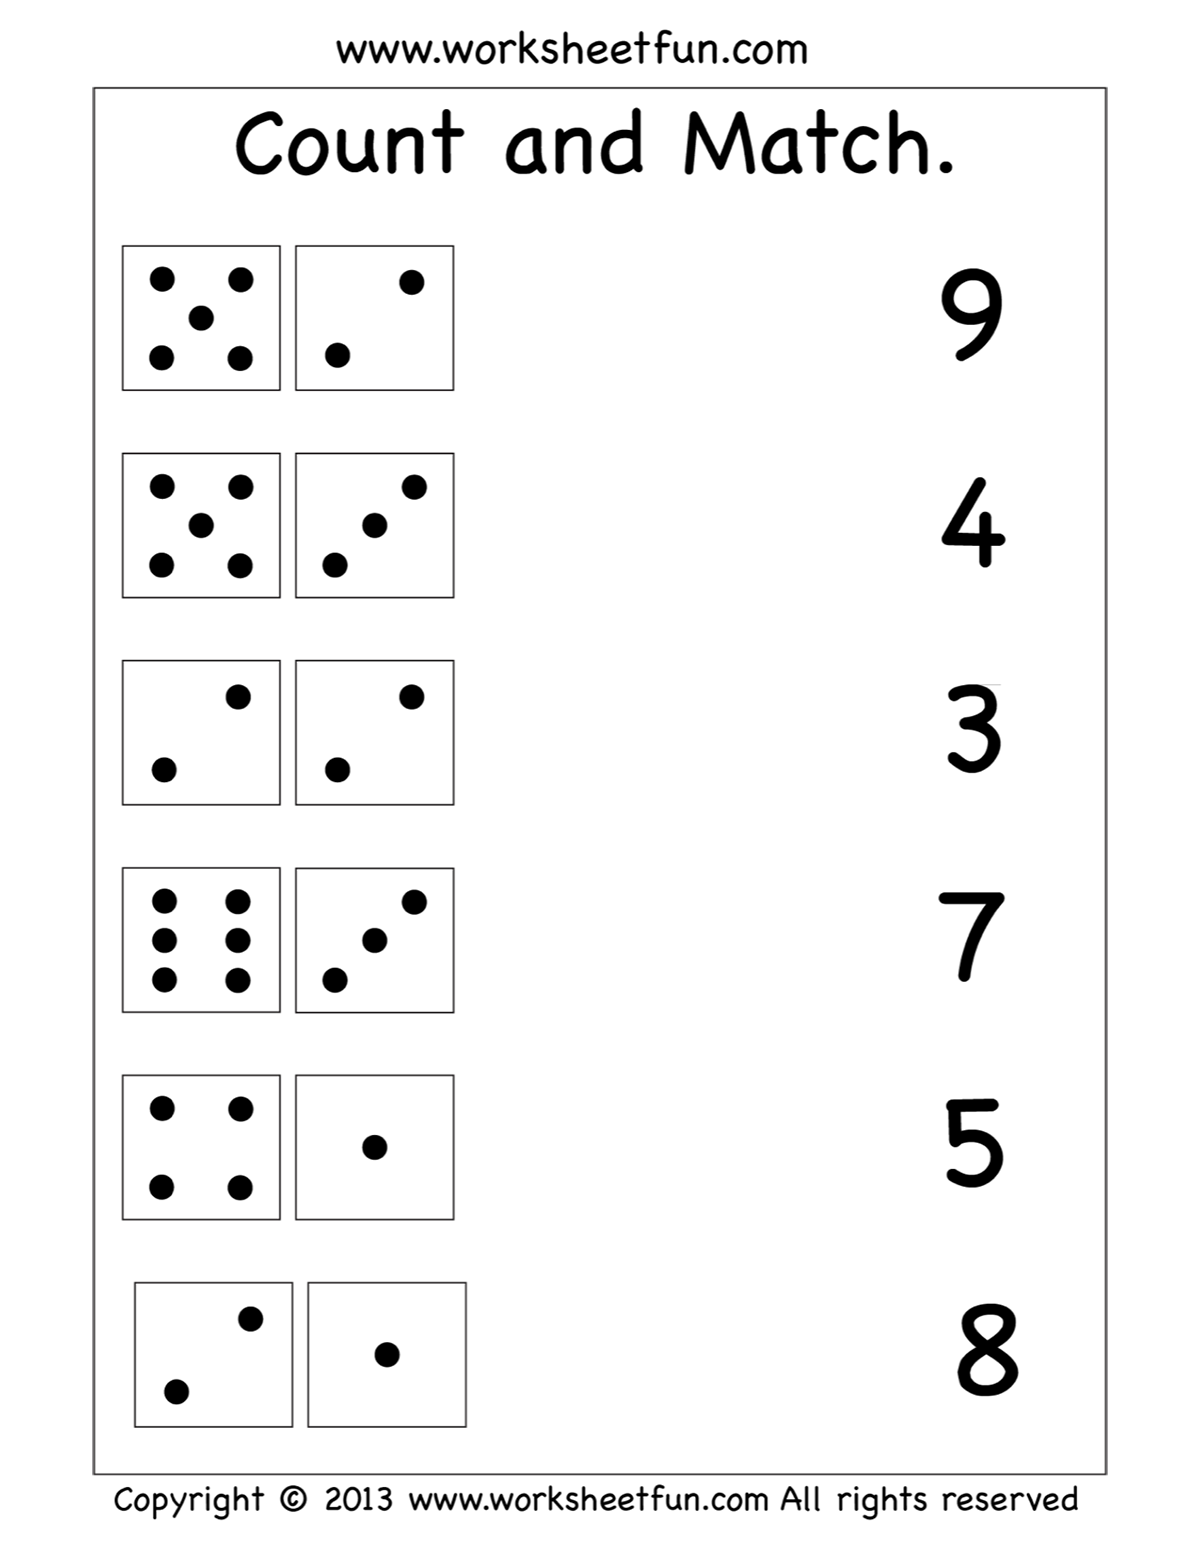 hight resolution of Count and match worksheet   Preschool math worksheets